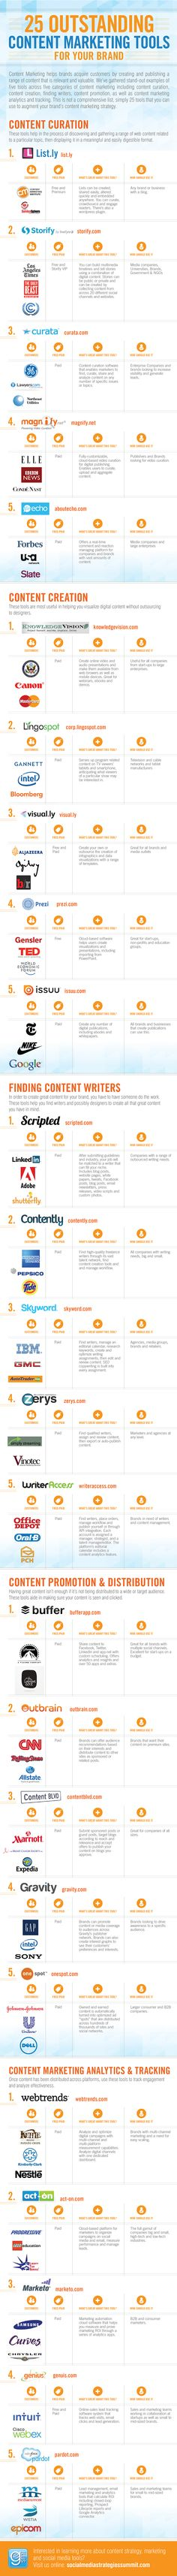 25 Outstanding Content Marketing Tools #infographic #marketing